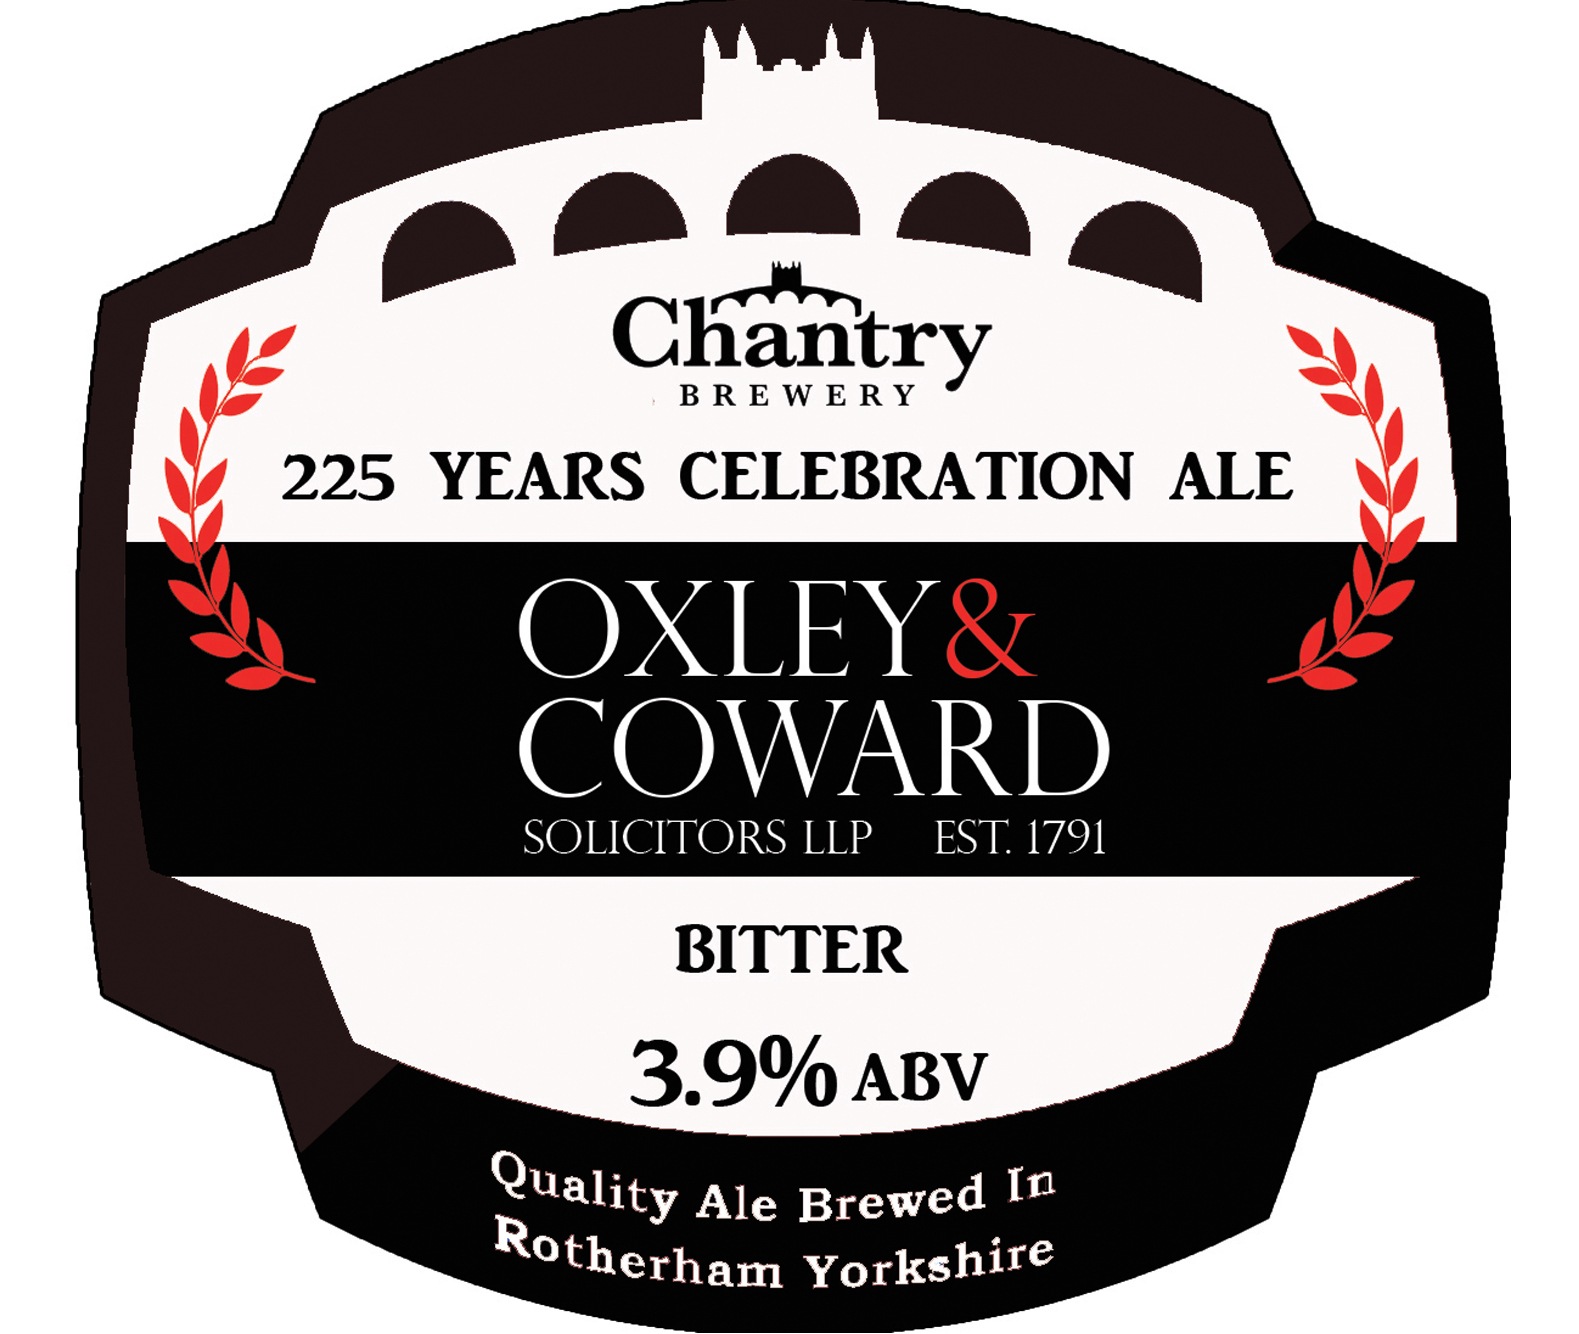 Chantry Brewery Oxley and Coward